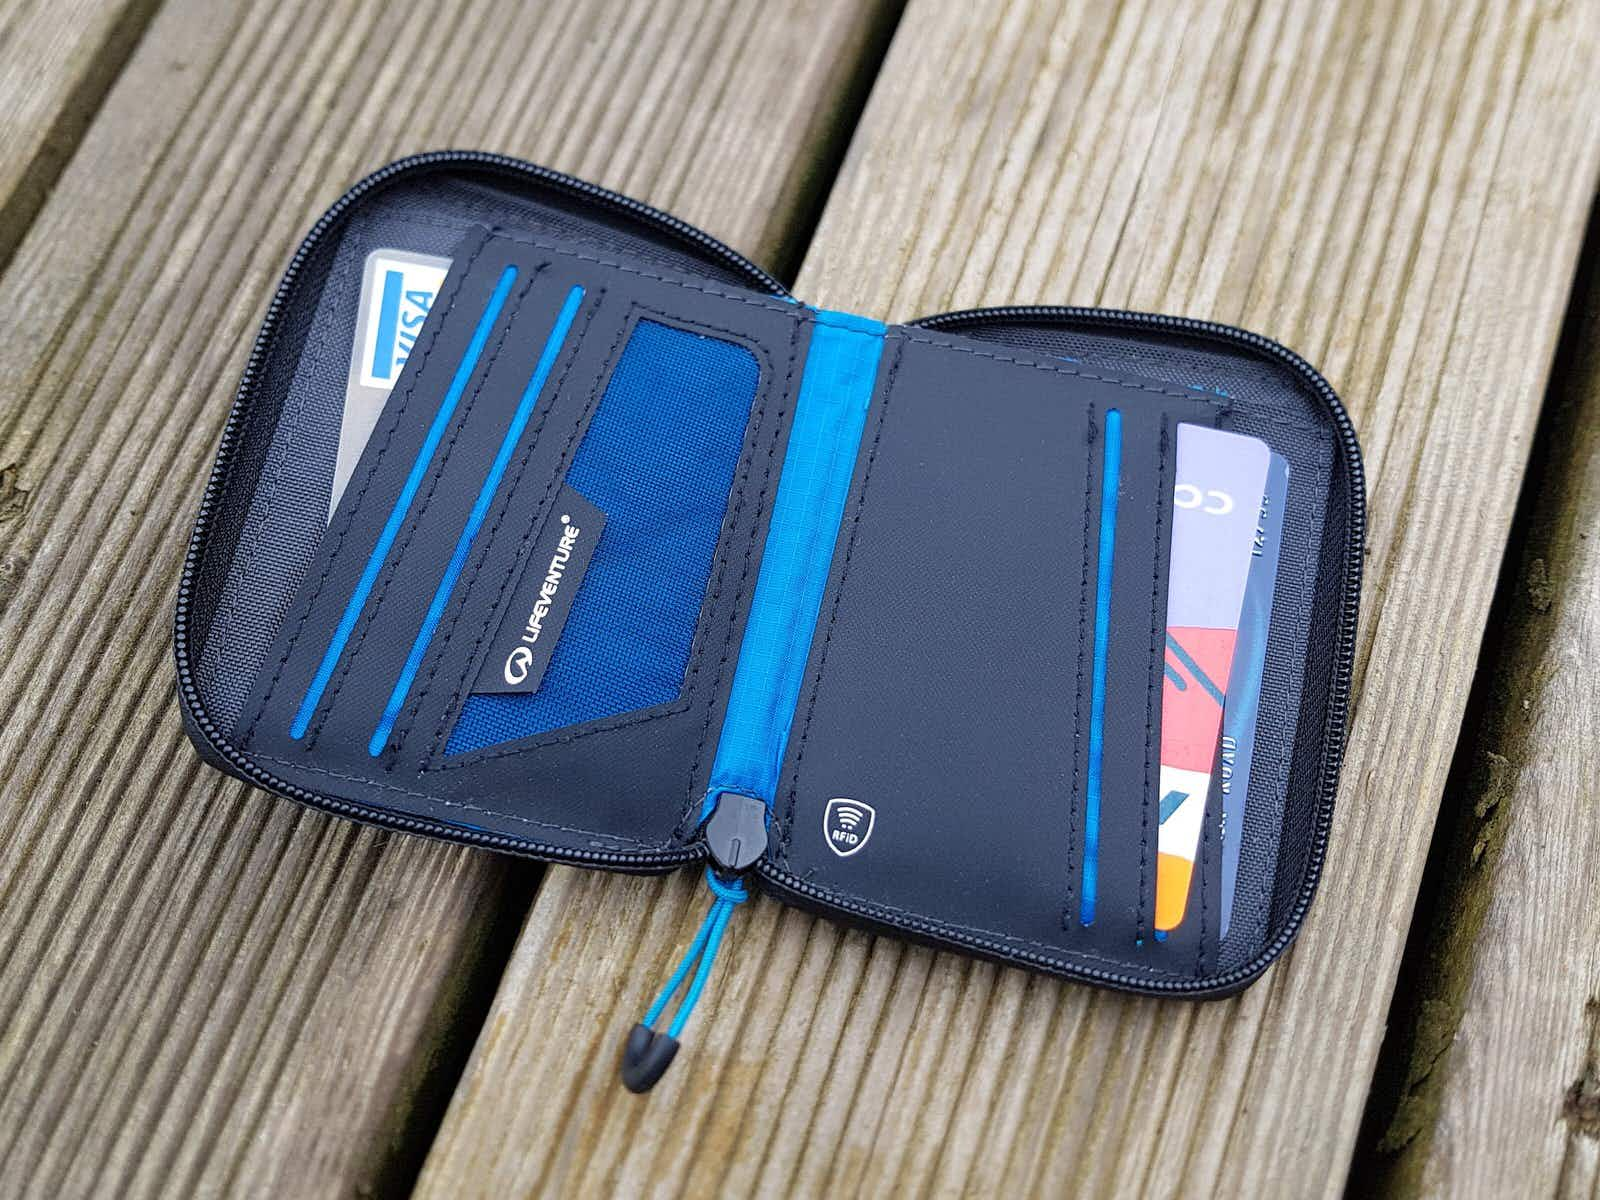 Travel gear reviews: staying safe and healthy on the road